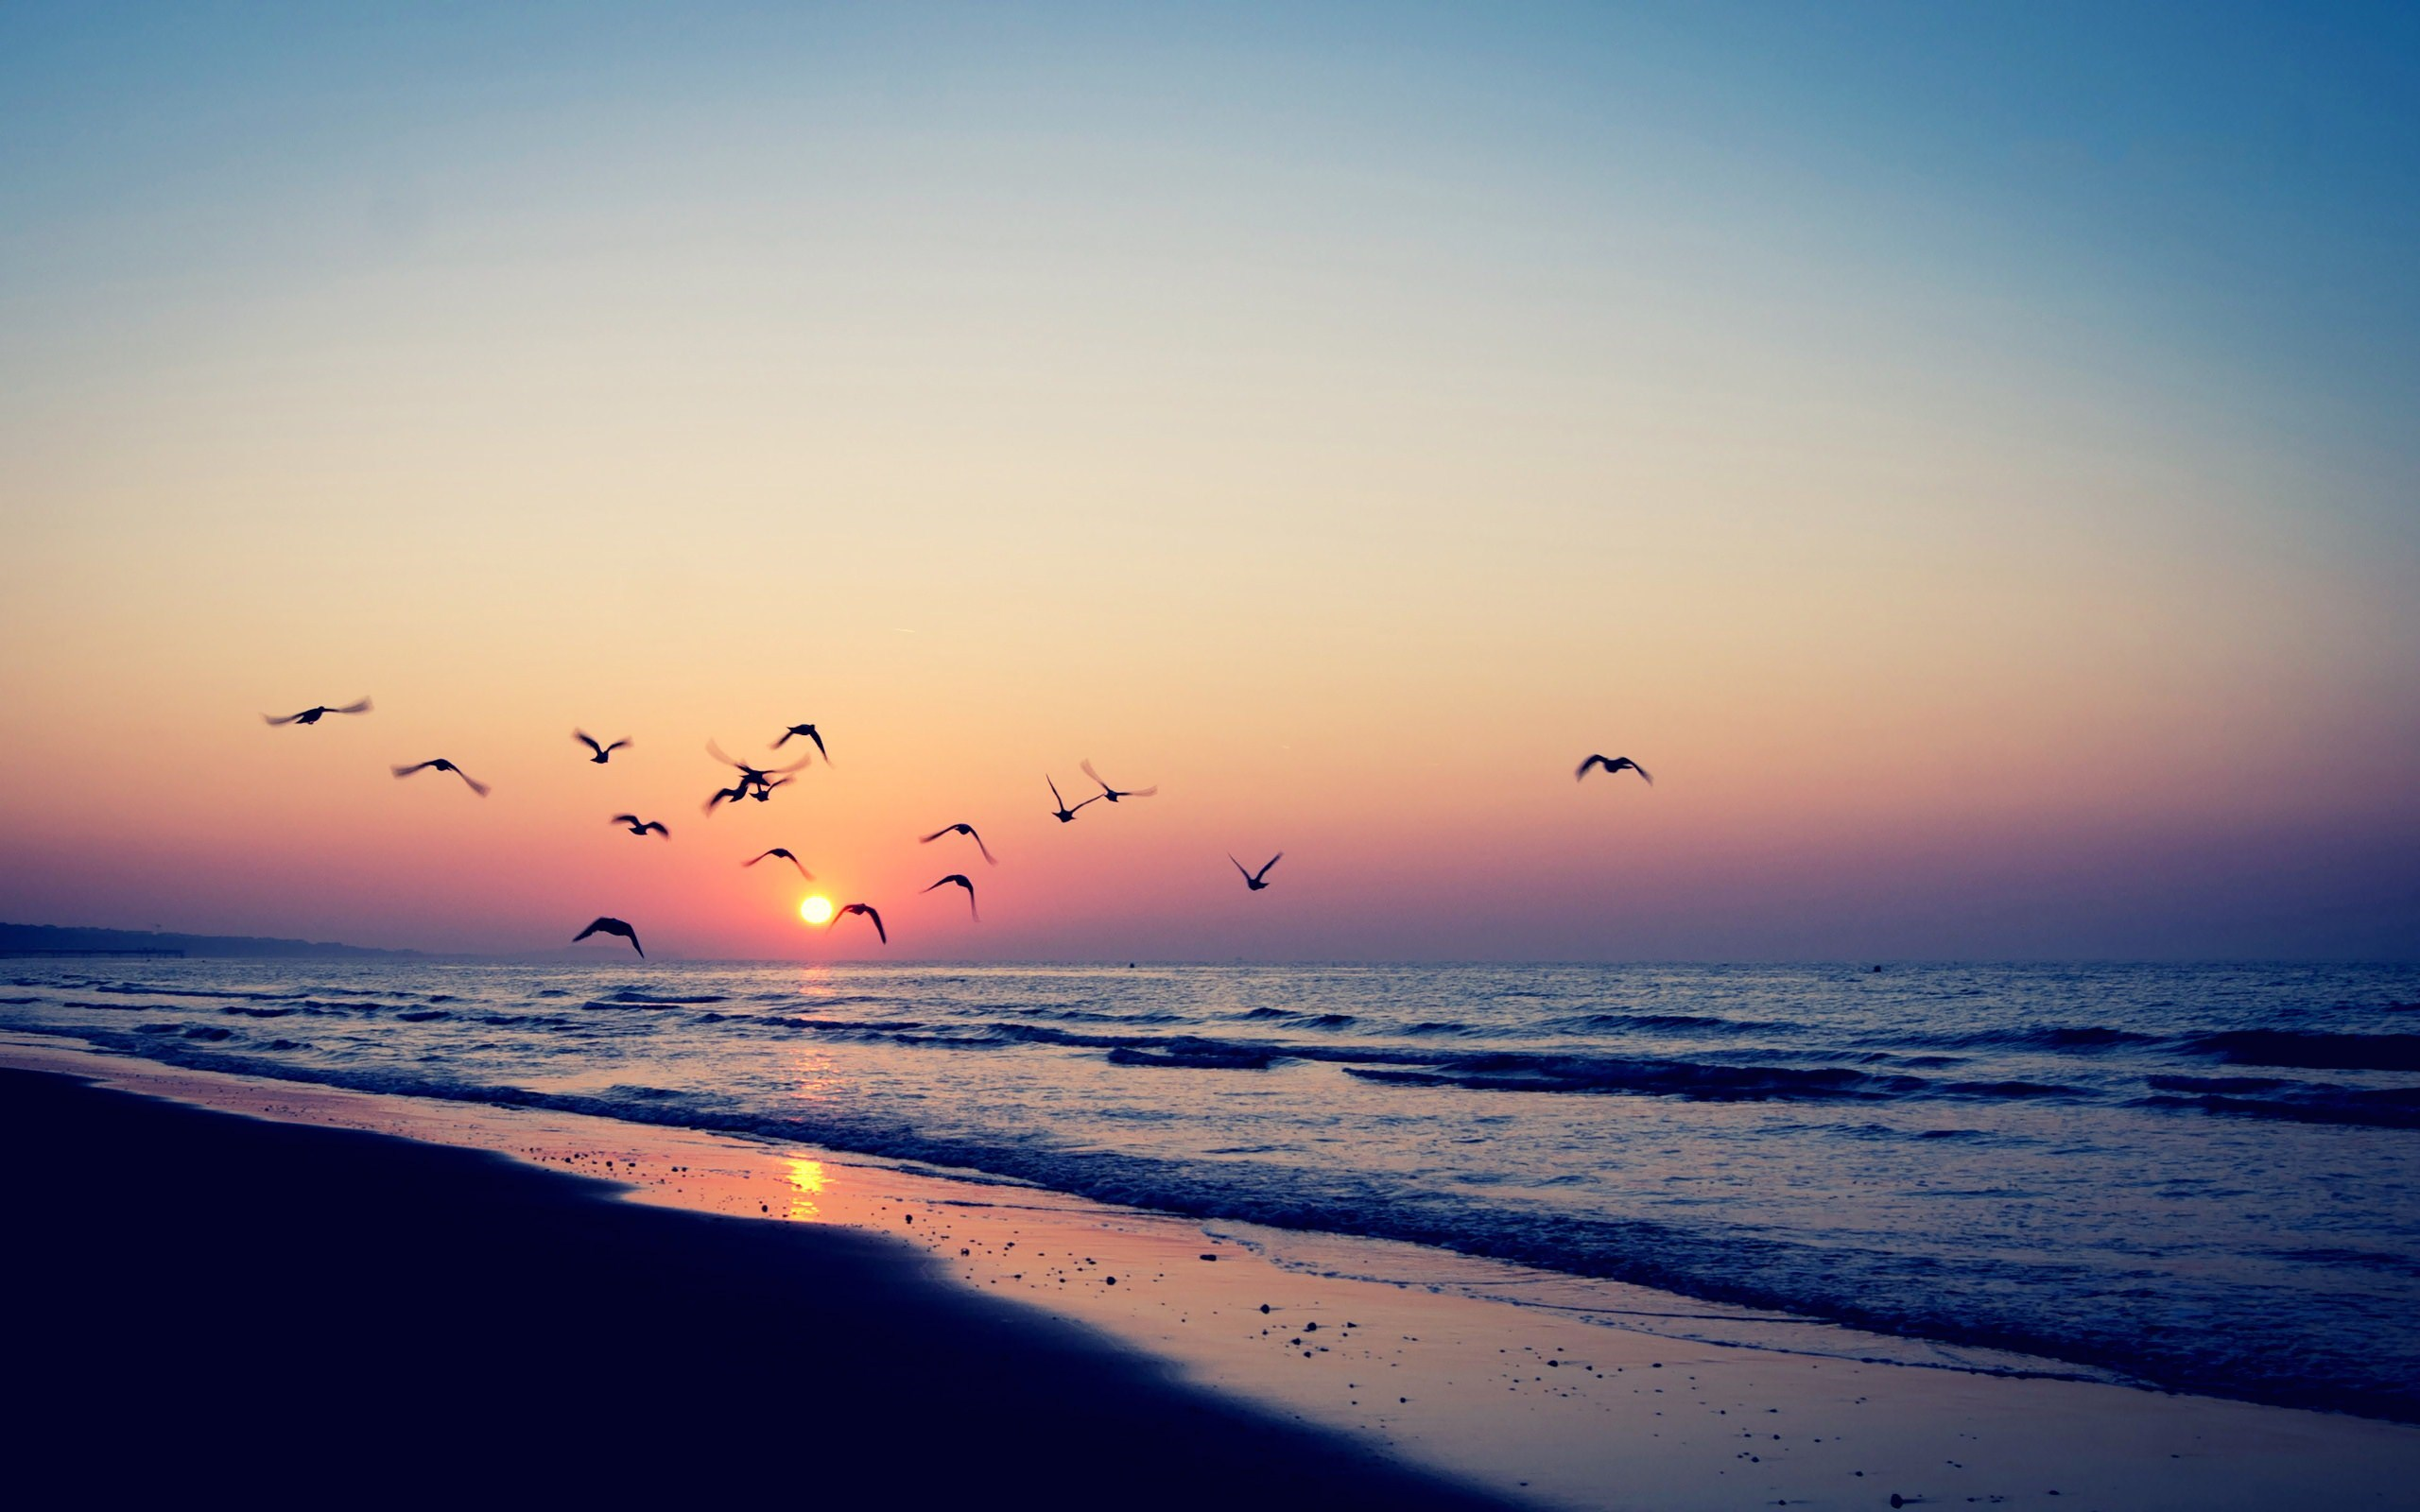 beach-sea-waves-sunset-birds-hd-wallpaper1